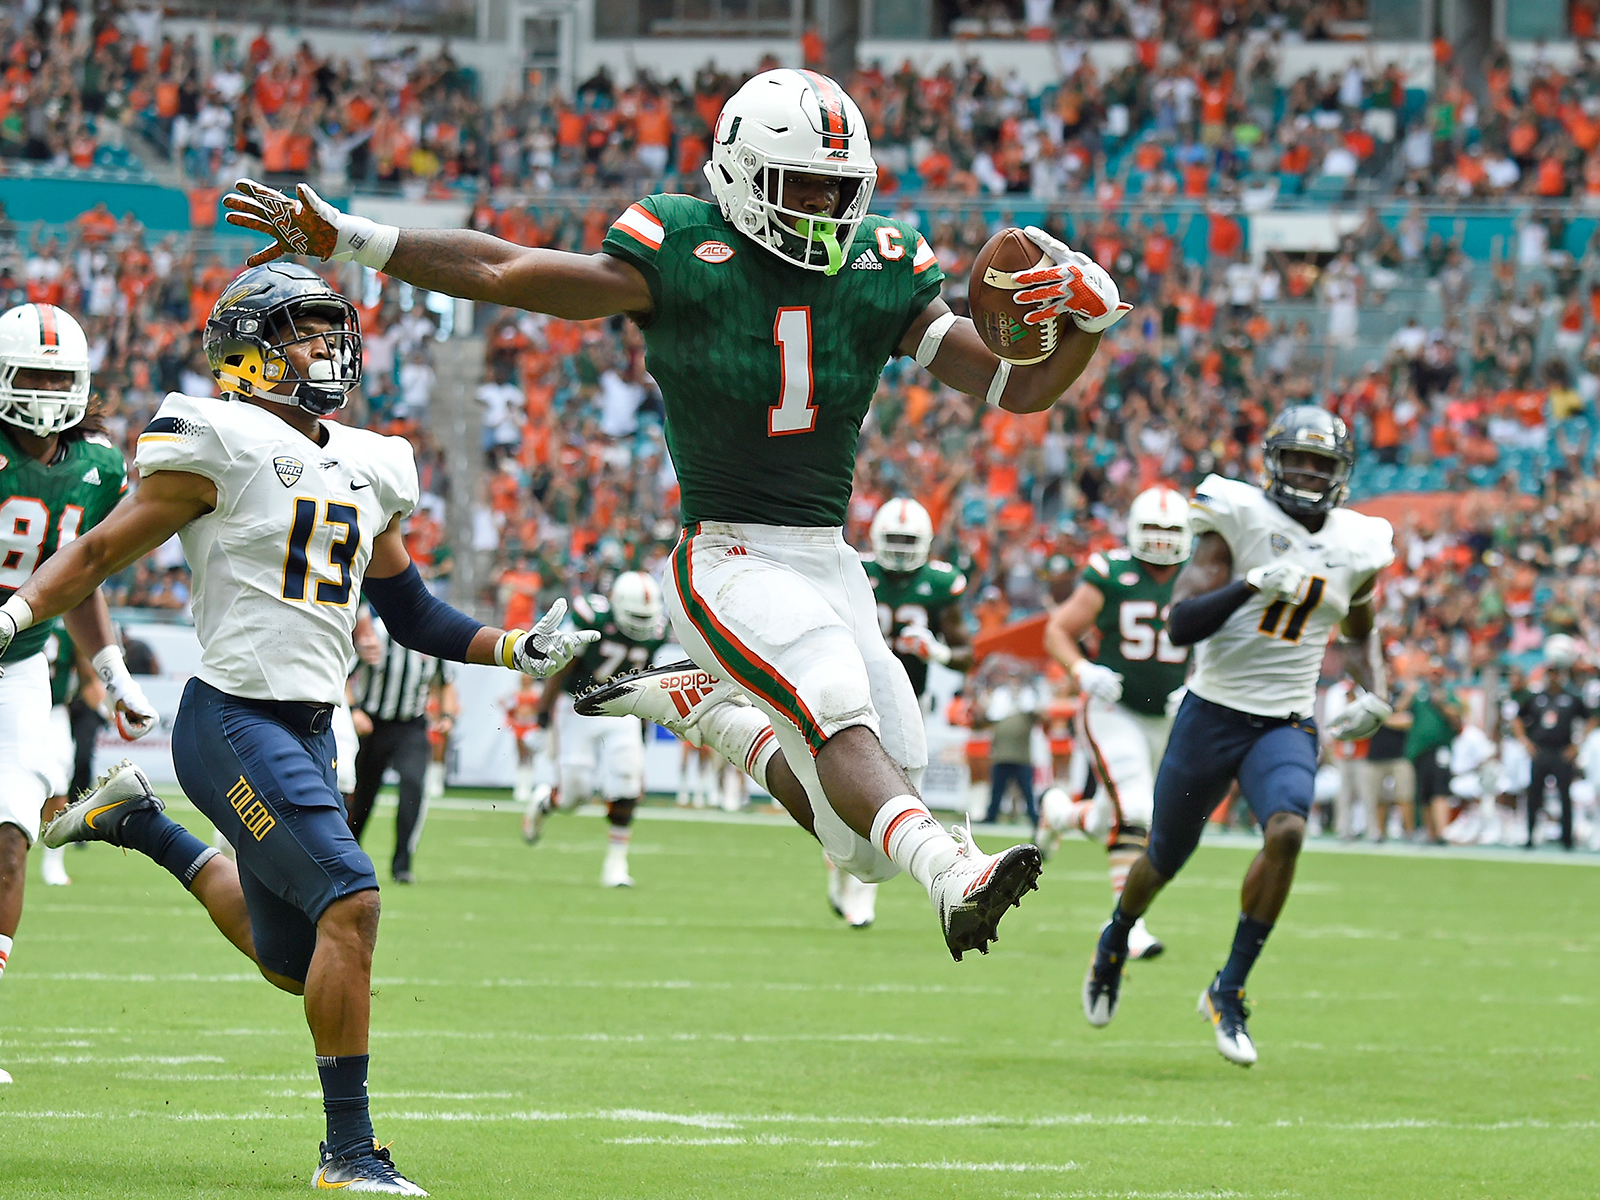 Miami Hurricanes Football Game Day Images: Miami. - State of the U Miami hurricanes football photo gallery